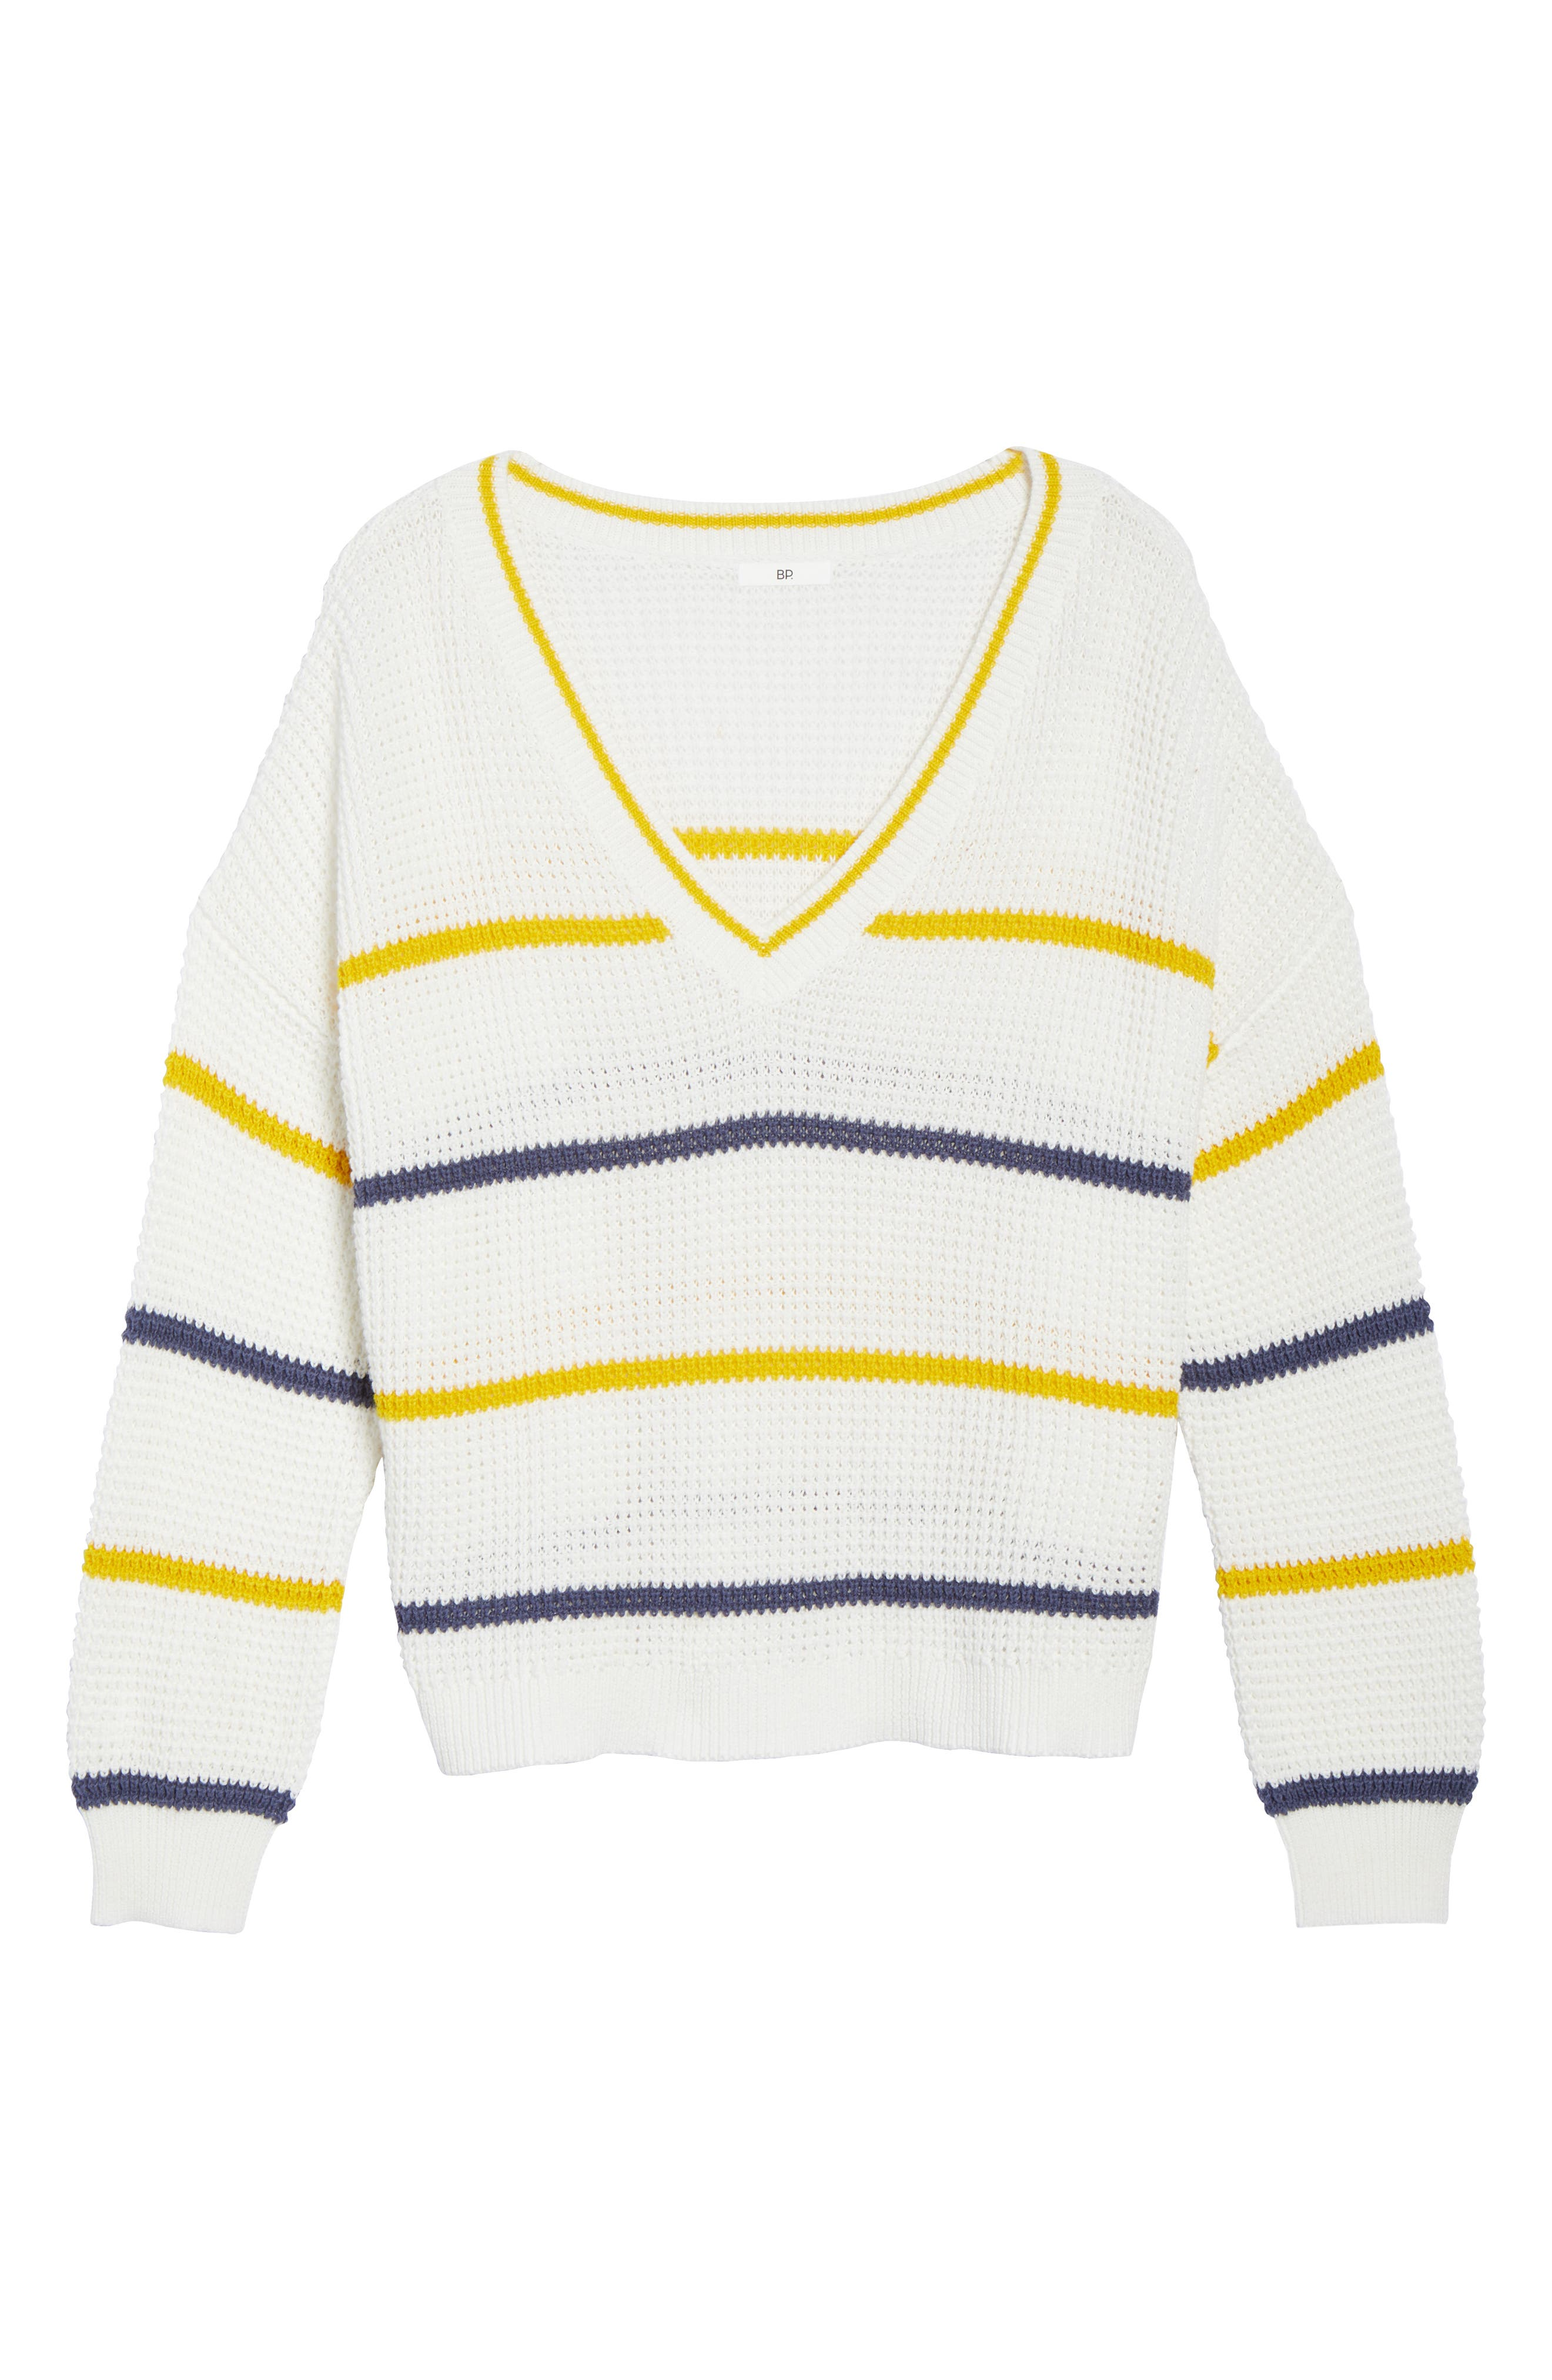 BP.,                             Stripe Cotton Thermal Sweater,                             Alternate thumbnail 12, color,                             IVORY SEA STRIPE